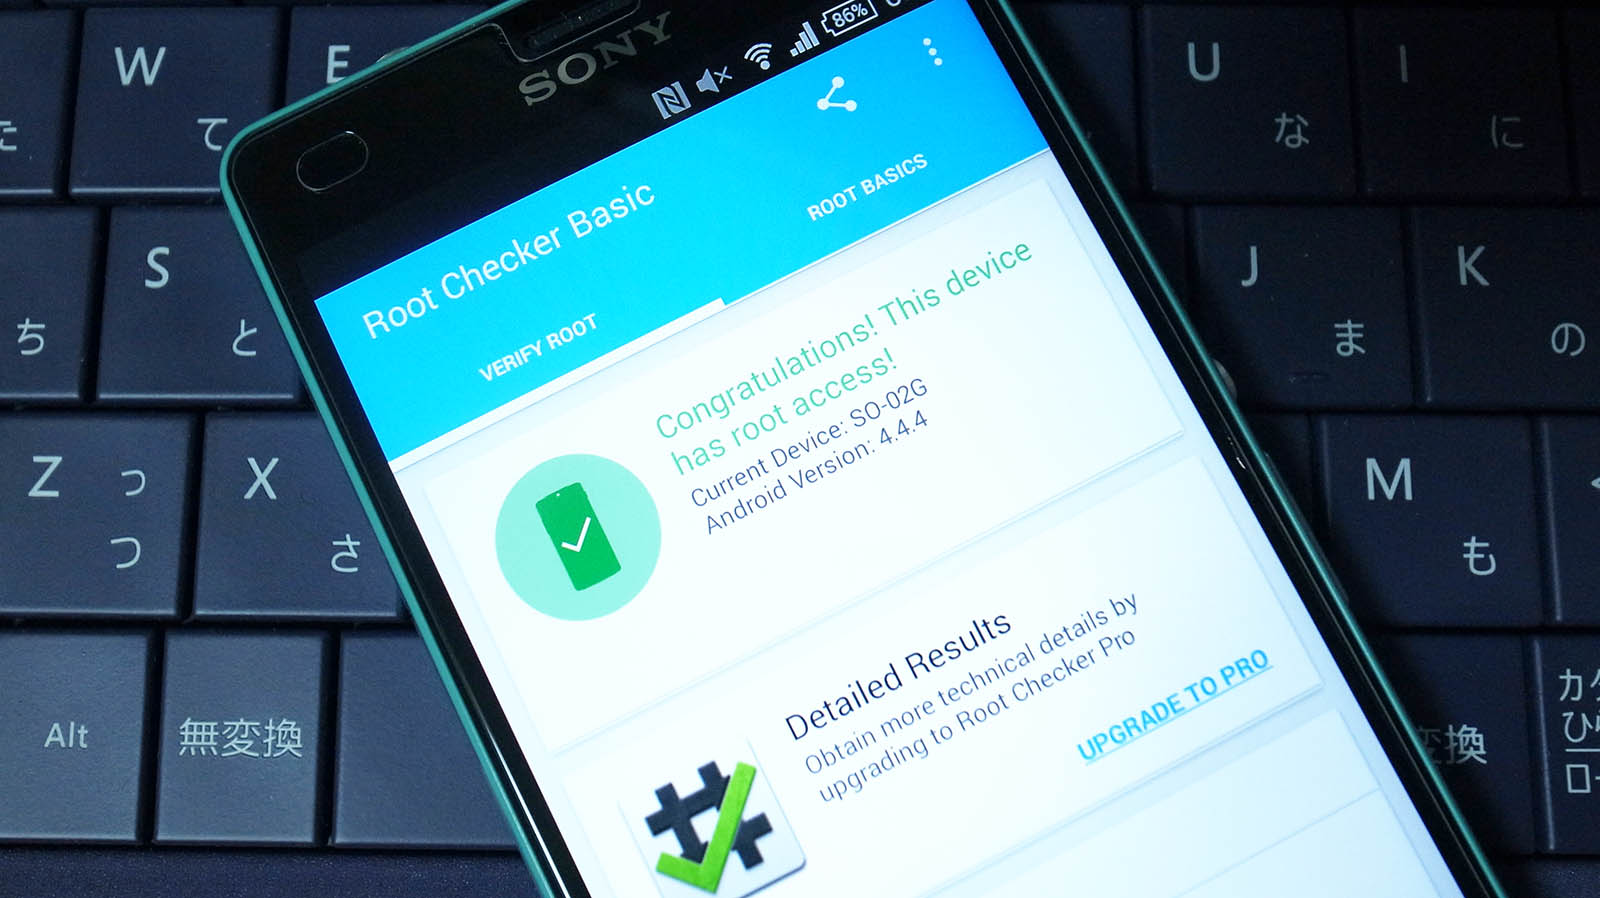 xperia-z3-compact-so-02g-rooted-prerooted-zip